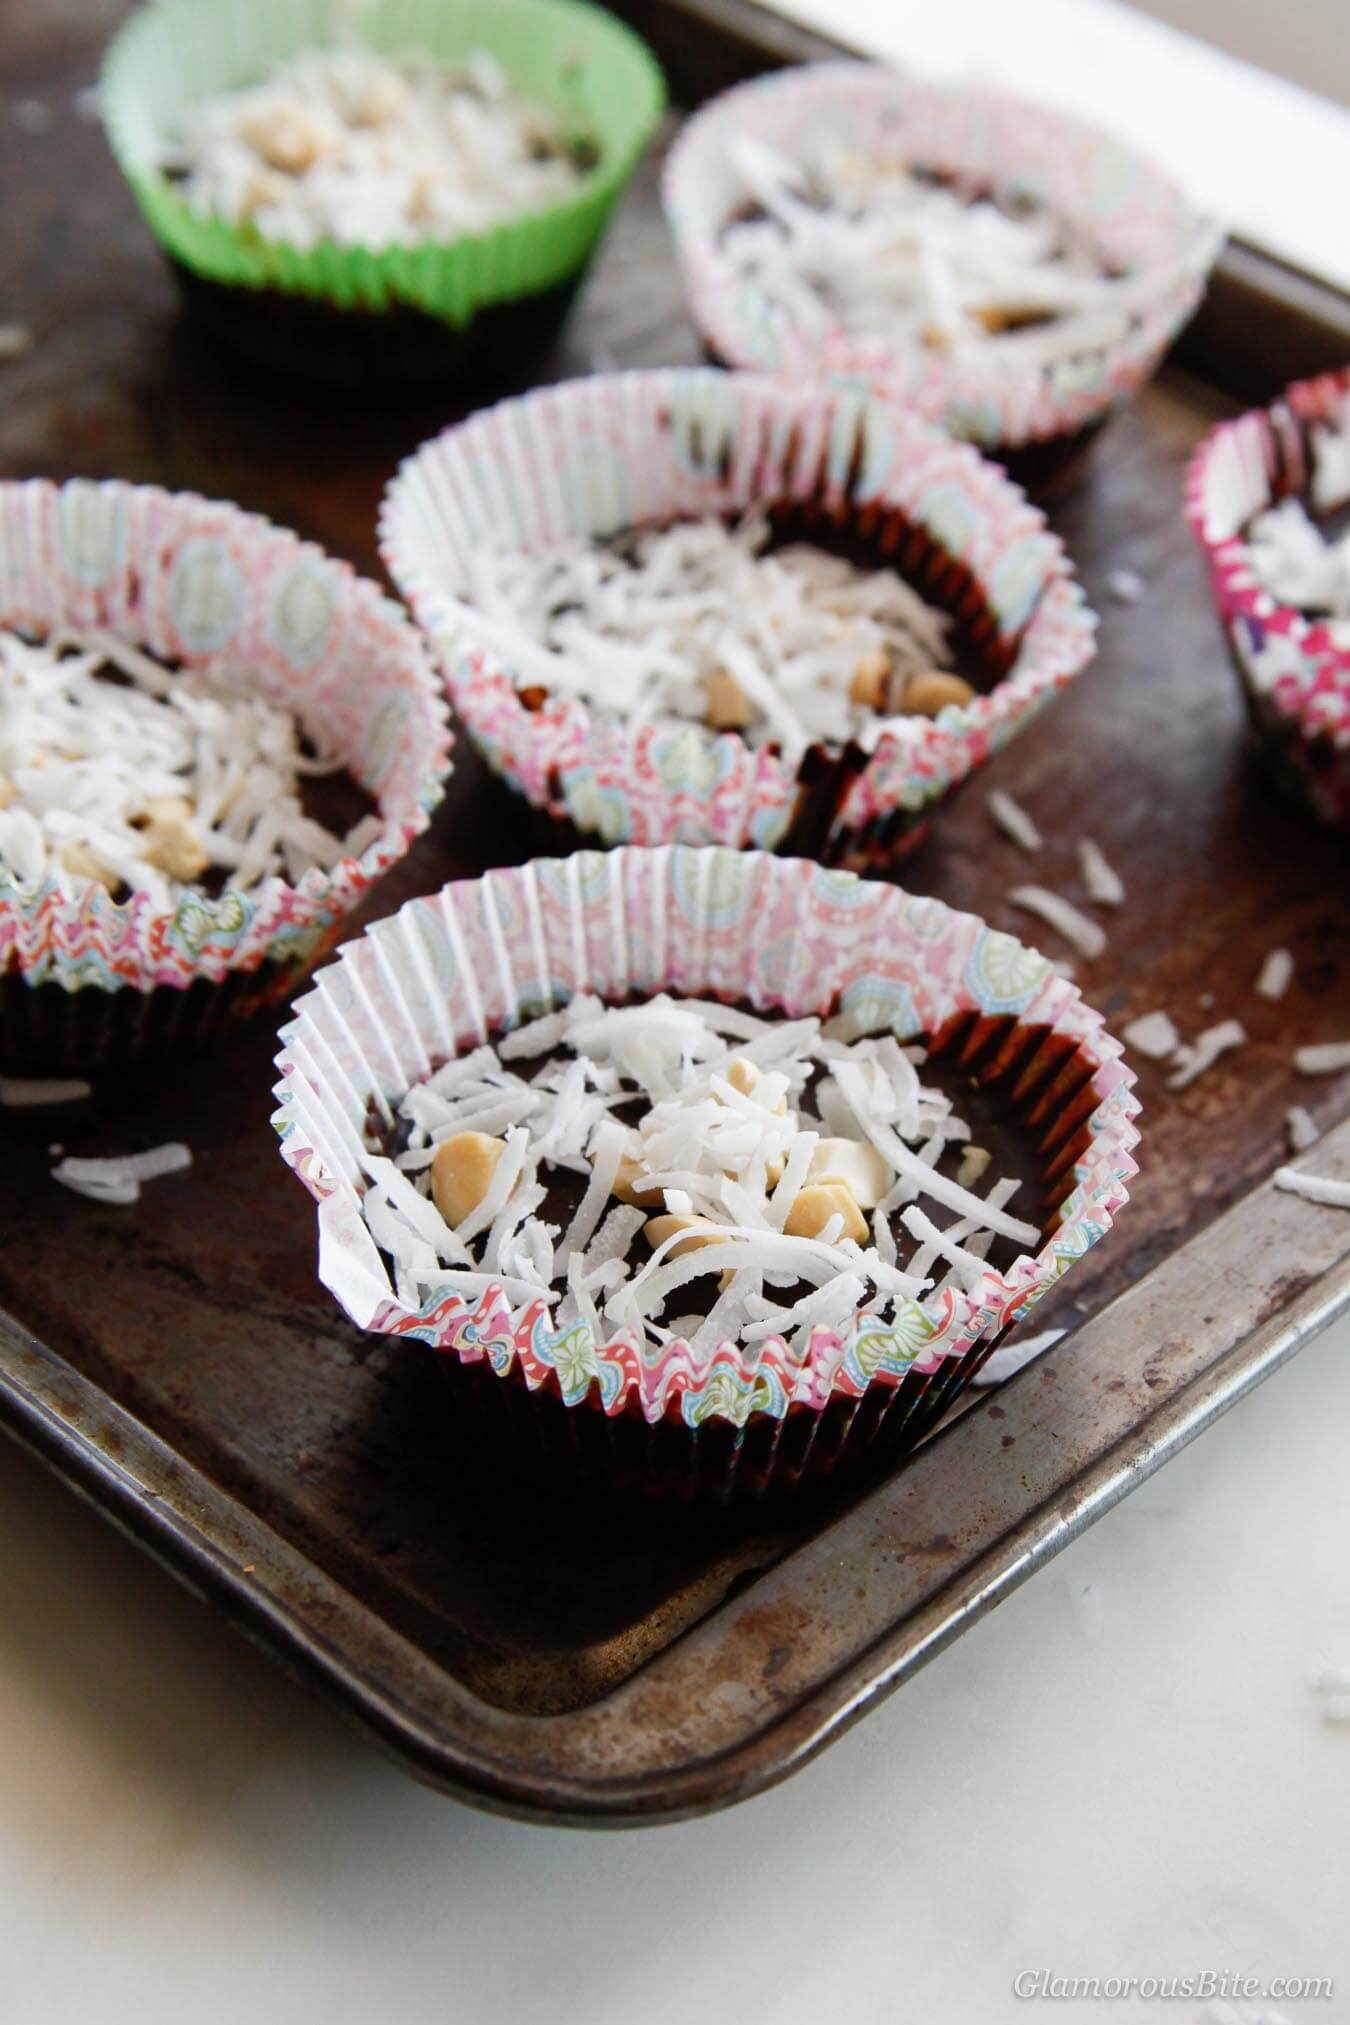 Gluten-Free Chocolate Coconut Peanut Butter Cups recipe